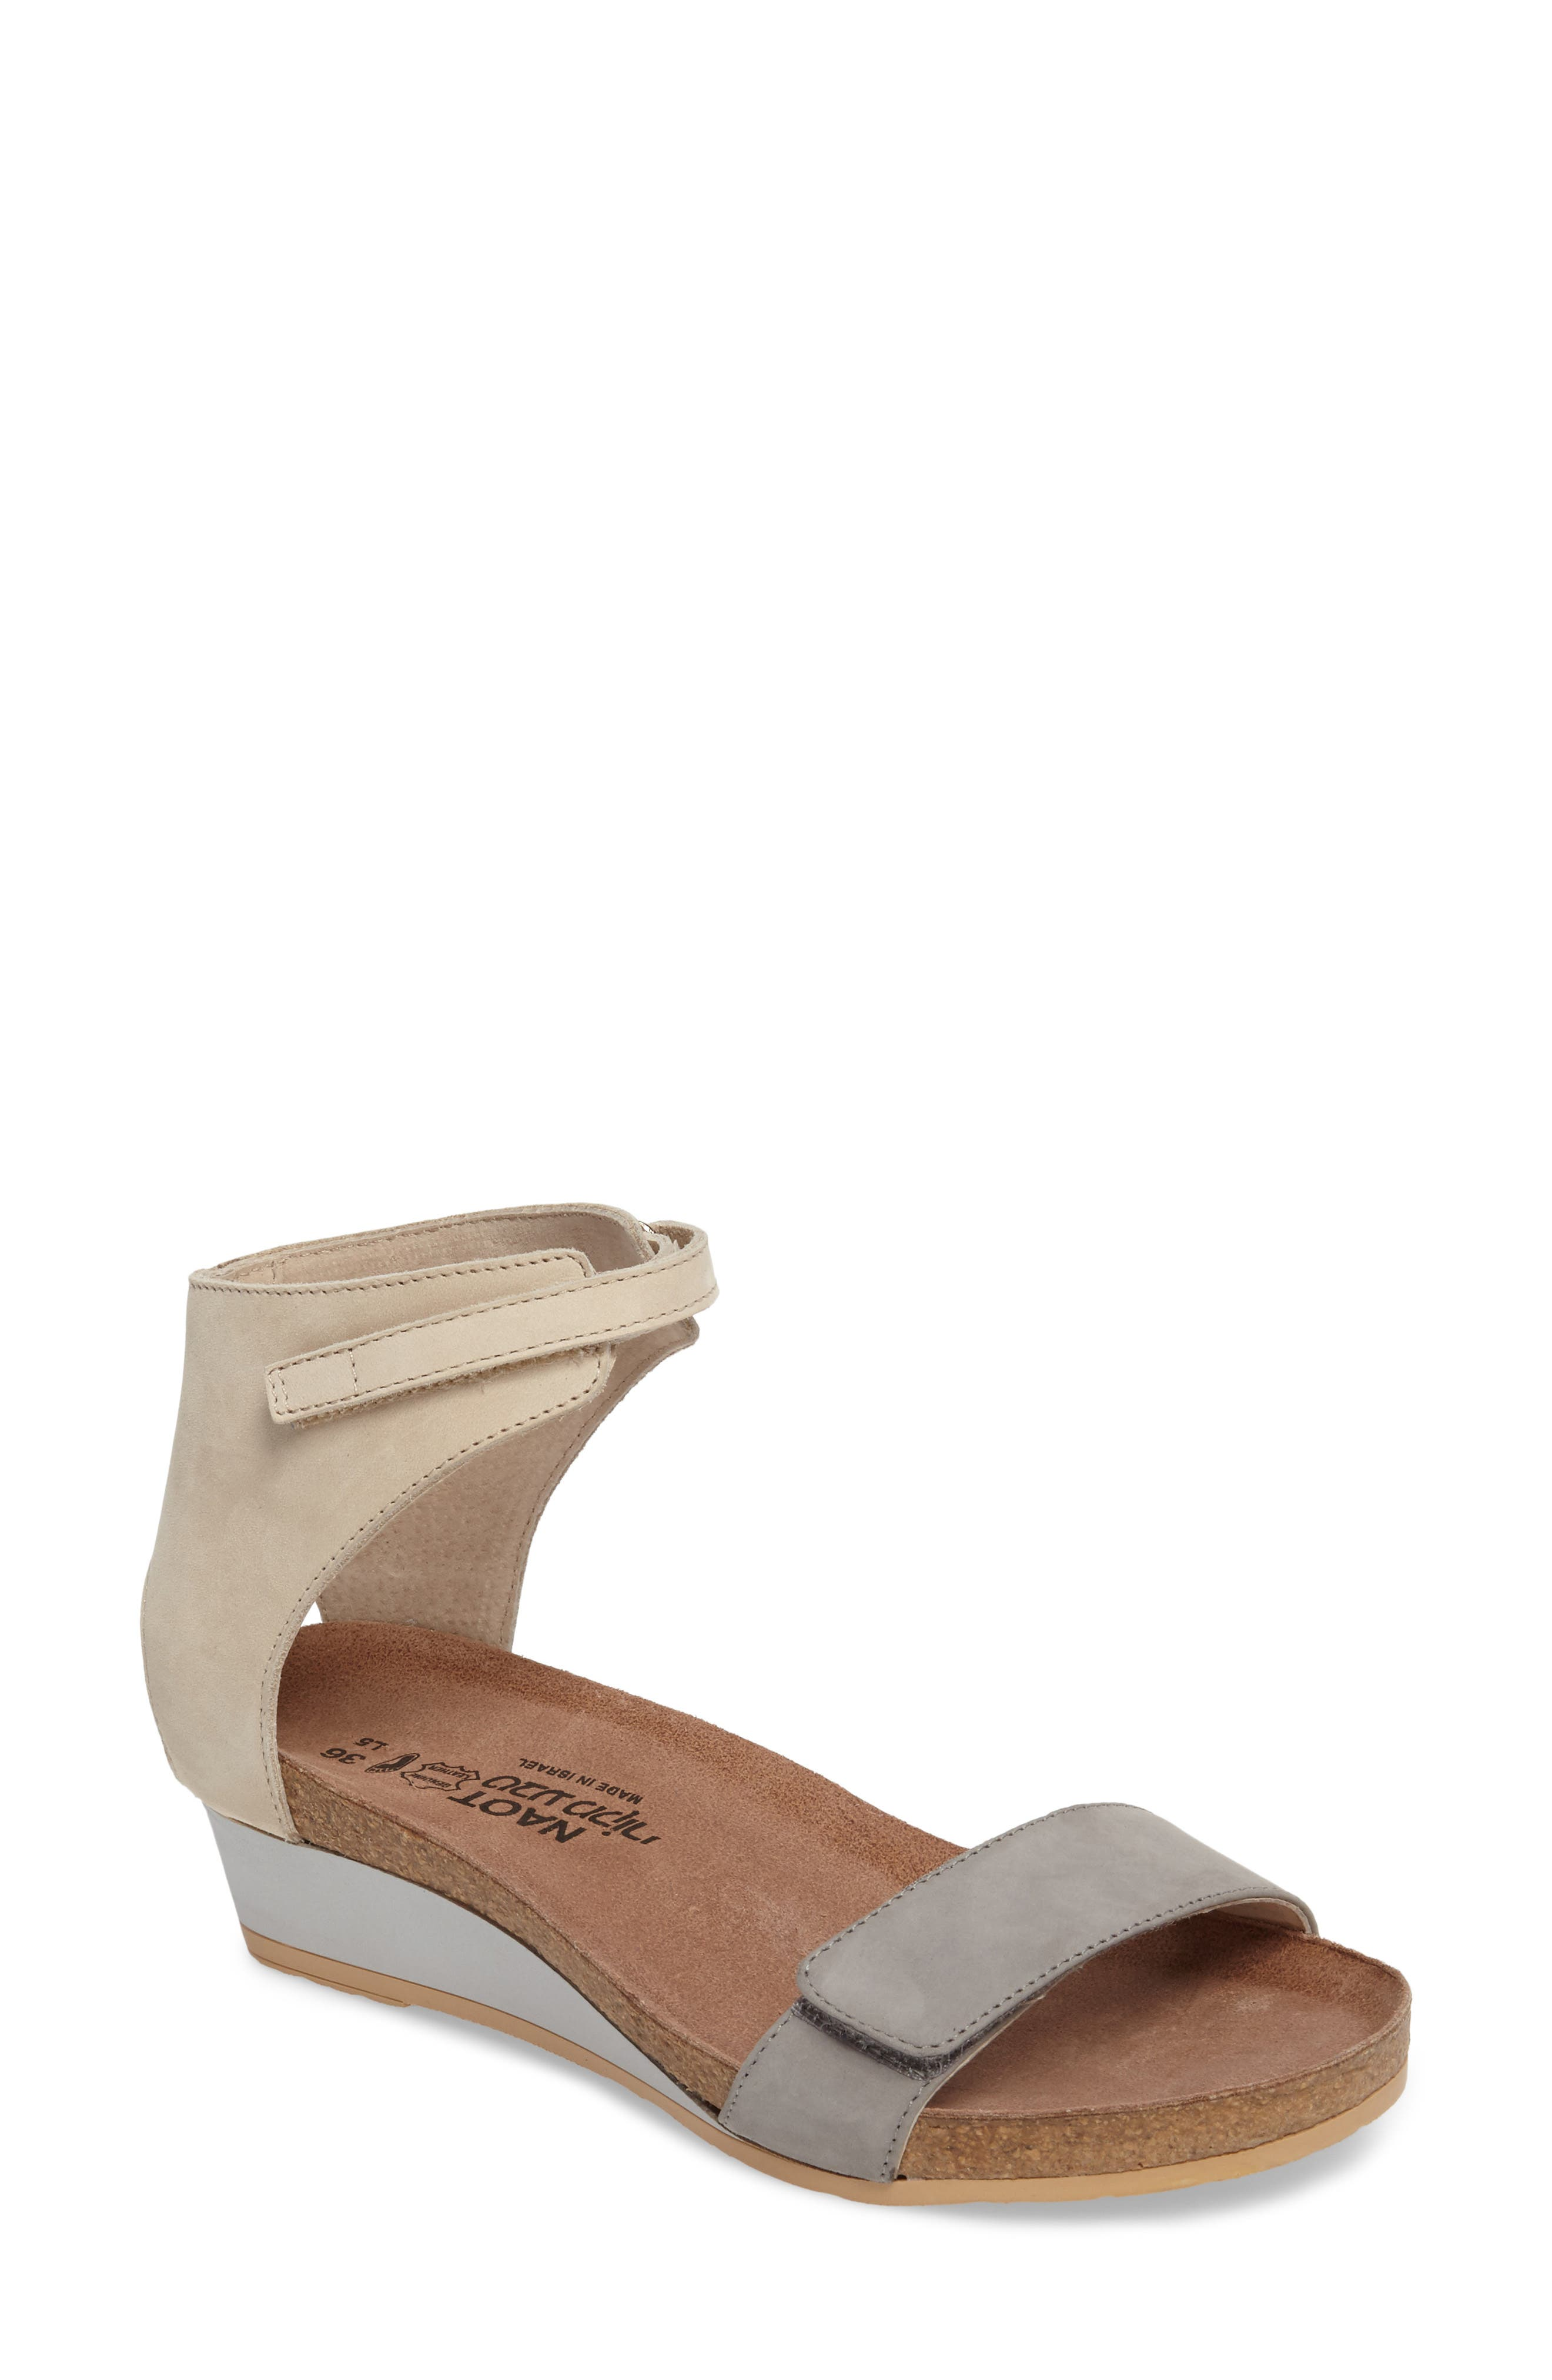 Prophecy Sandal, Main, color, GREY/ SILVER NUBUCK LEATHER